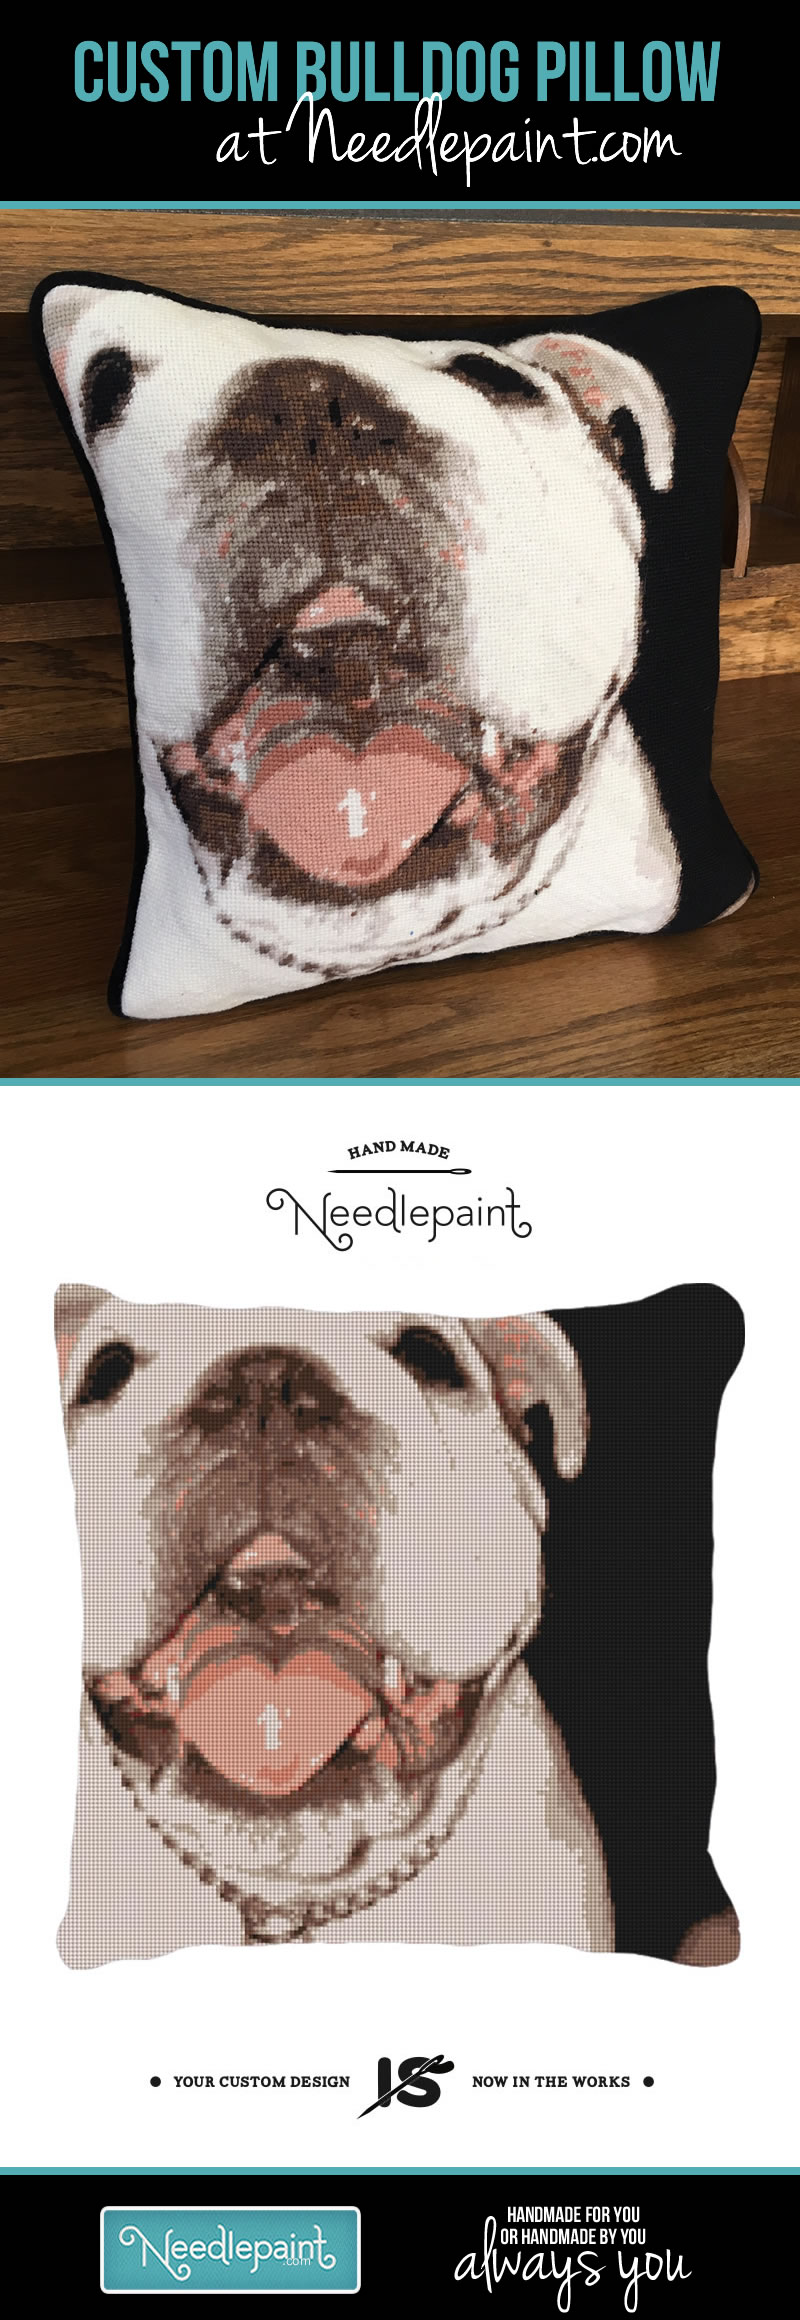 Custom Bulldog Needlepoint Pillow